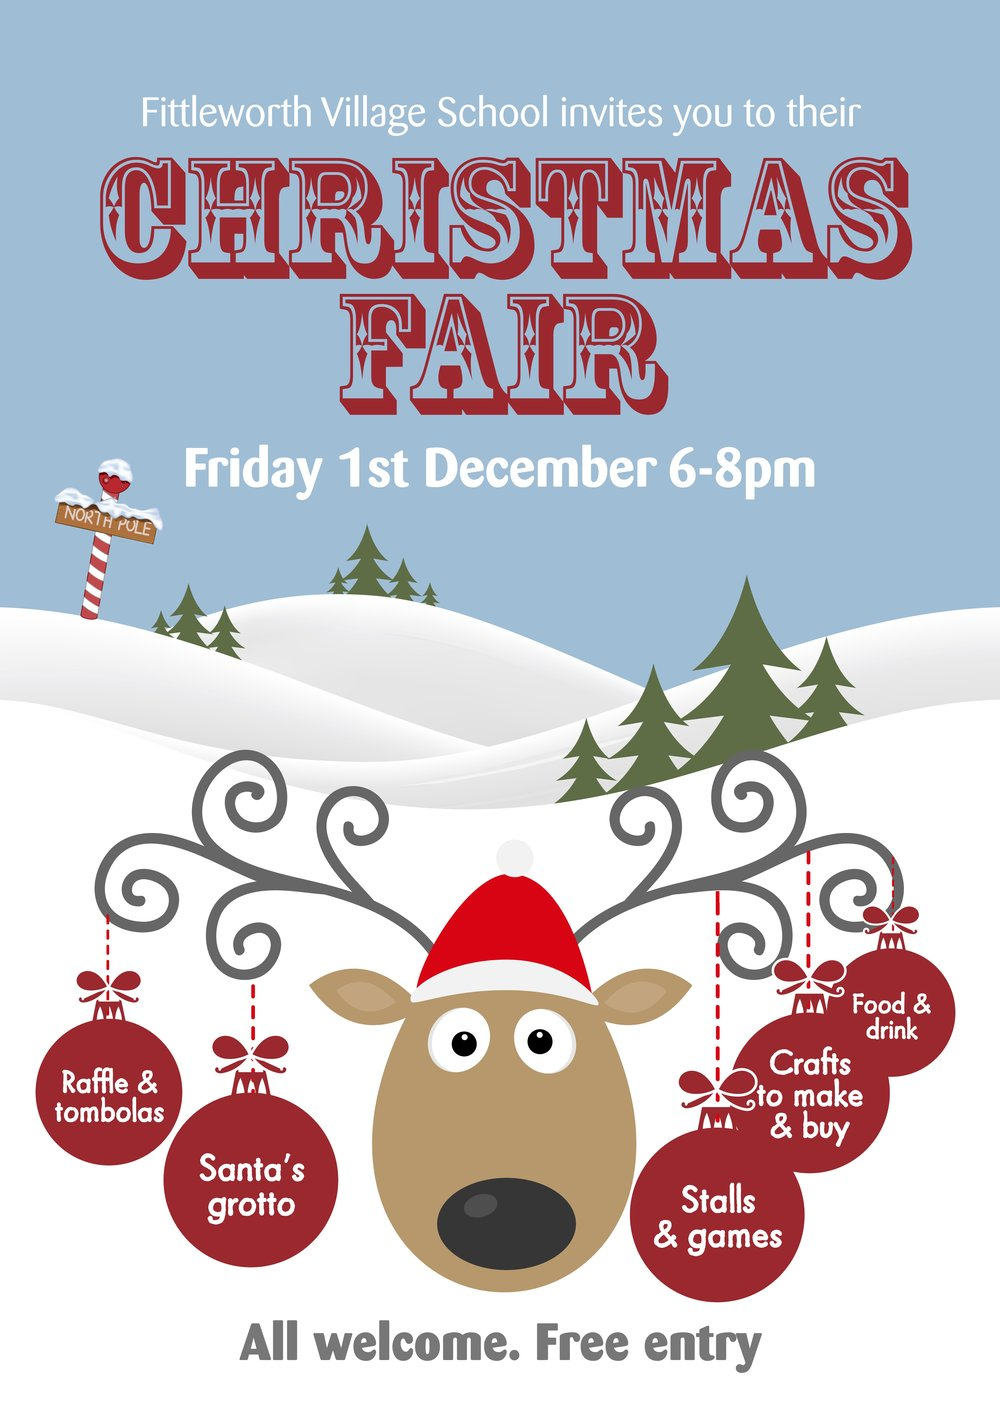 Fittleworth C of E Village School Christmas Fair